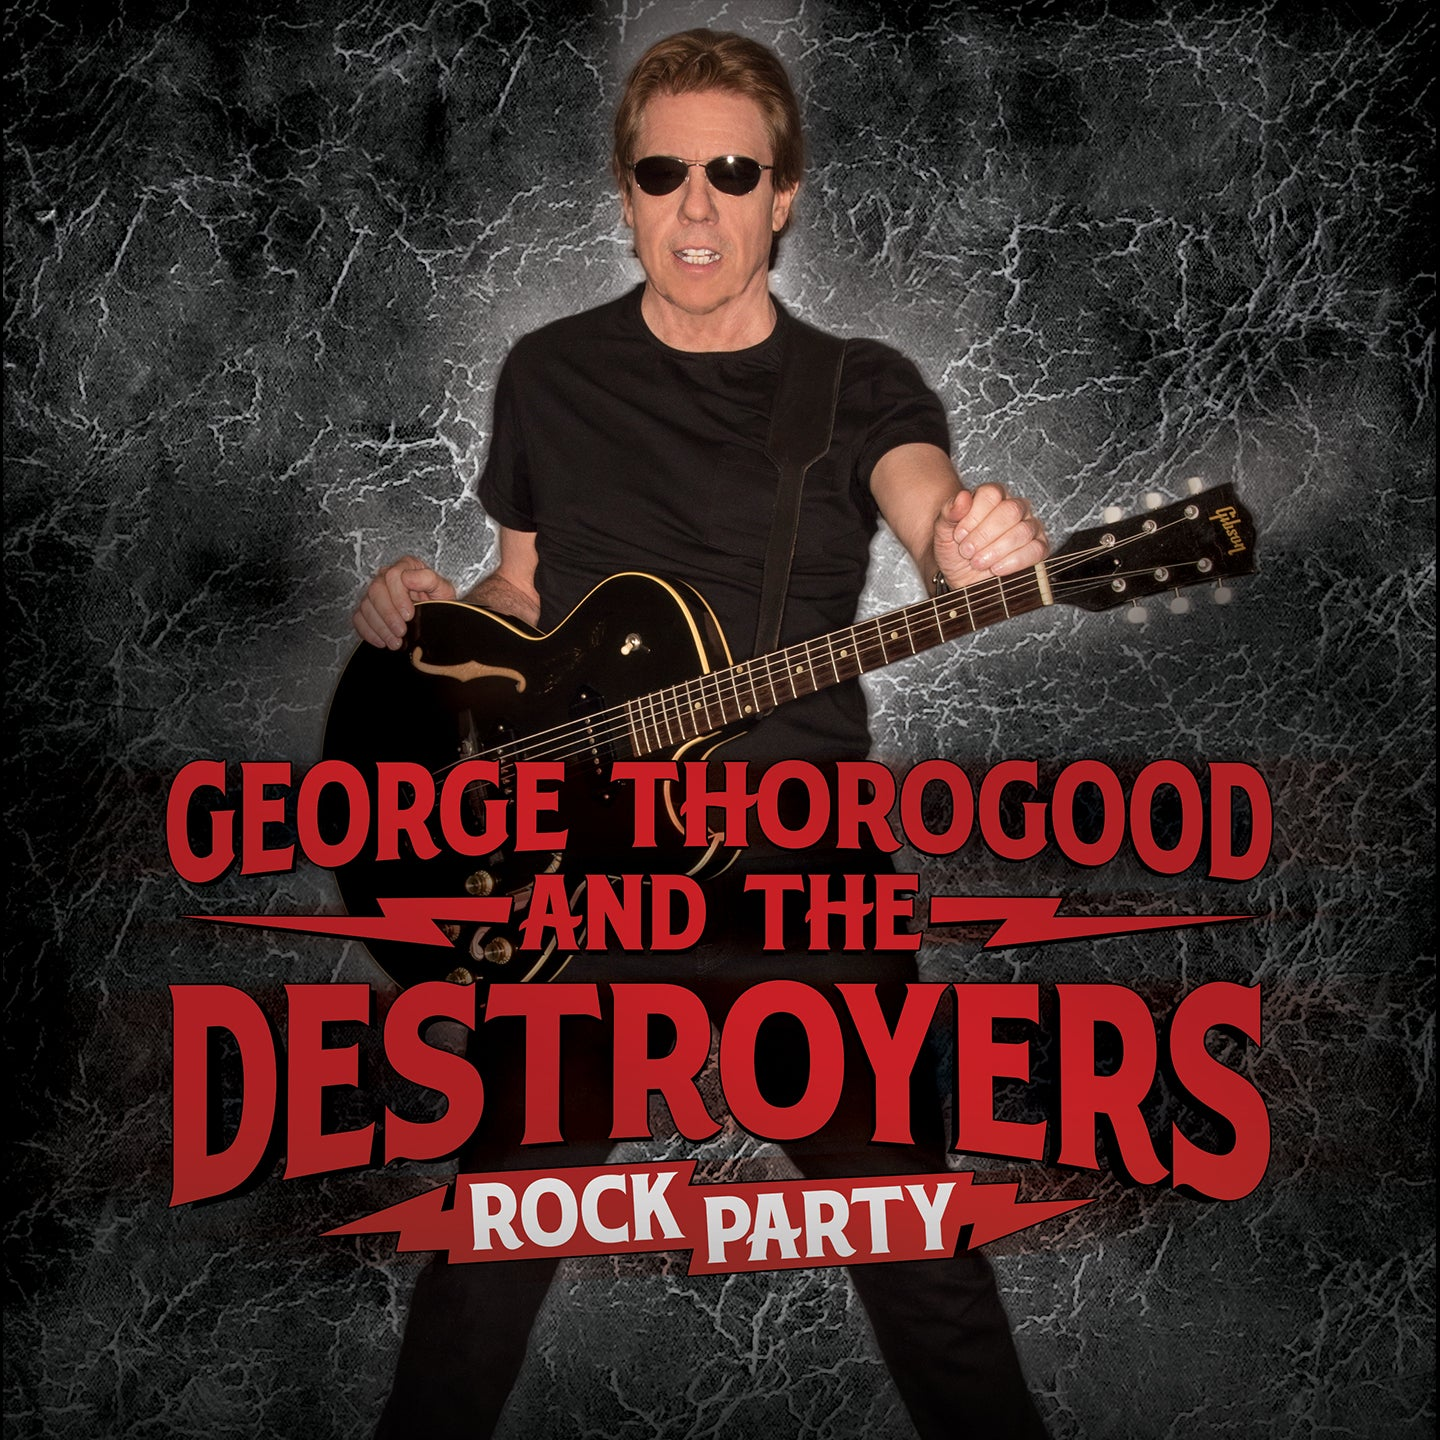 George Thorogood And The Destroyers Carolinatix